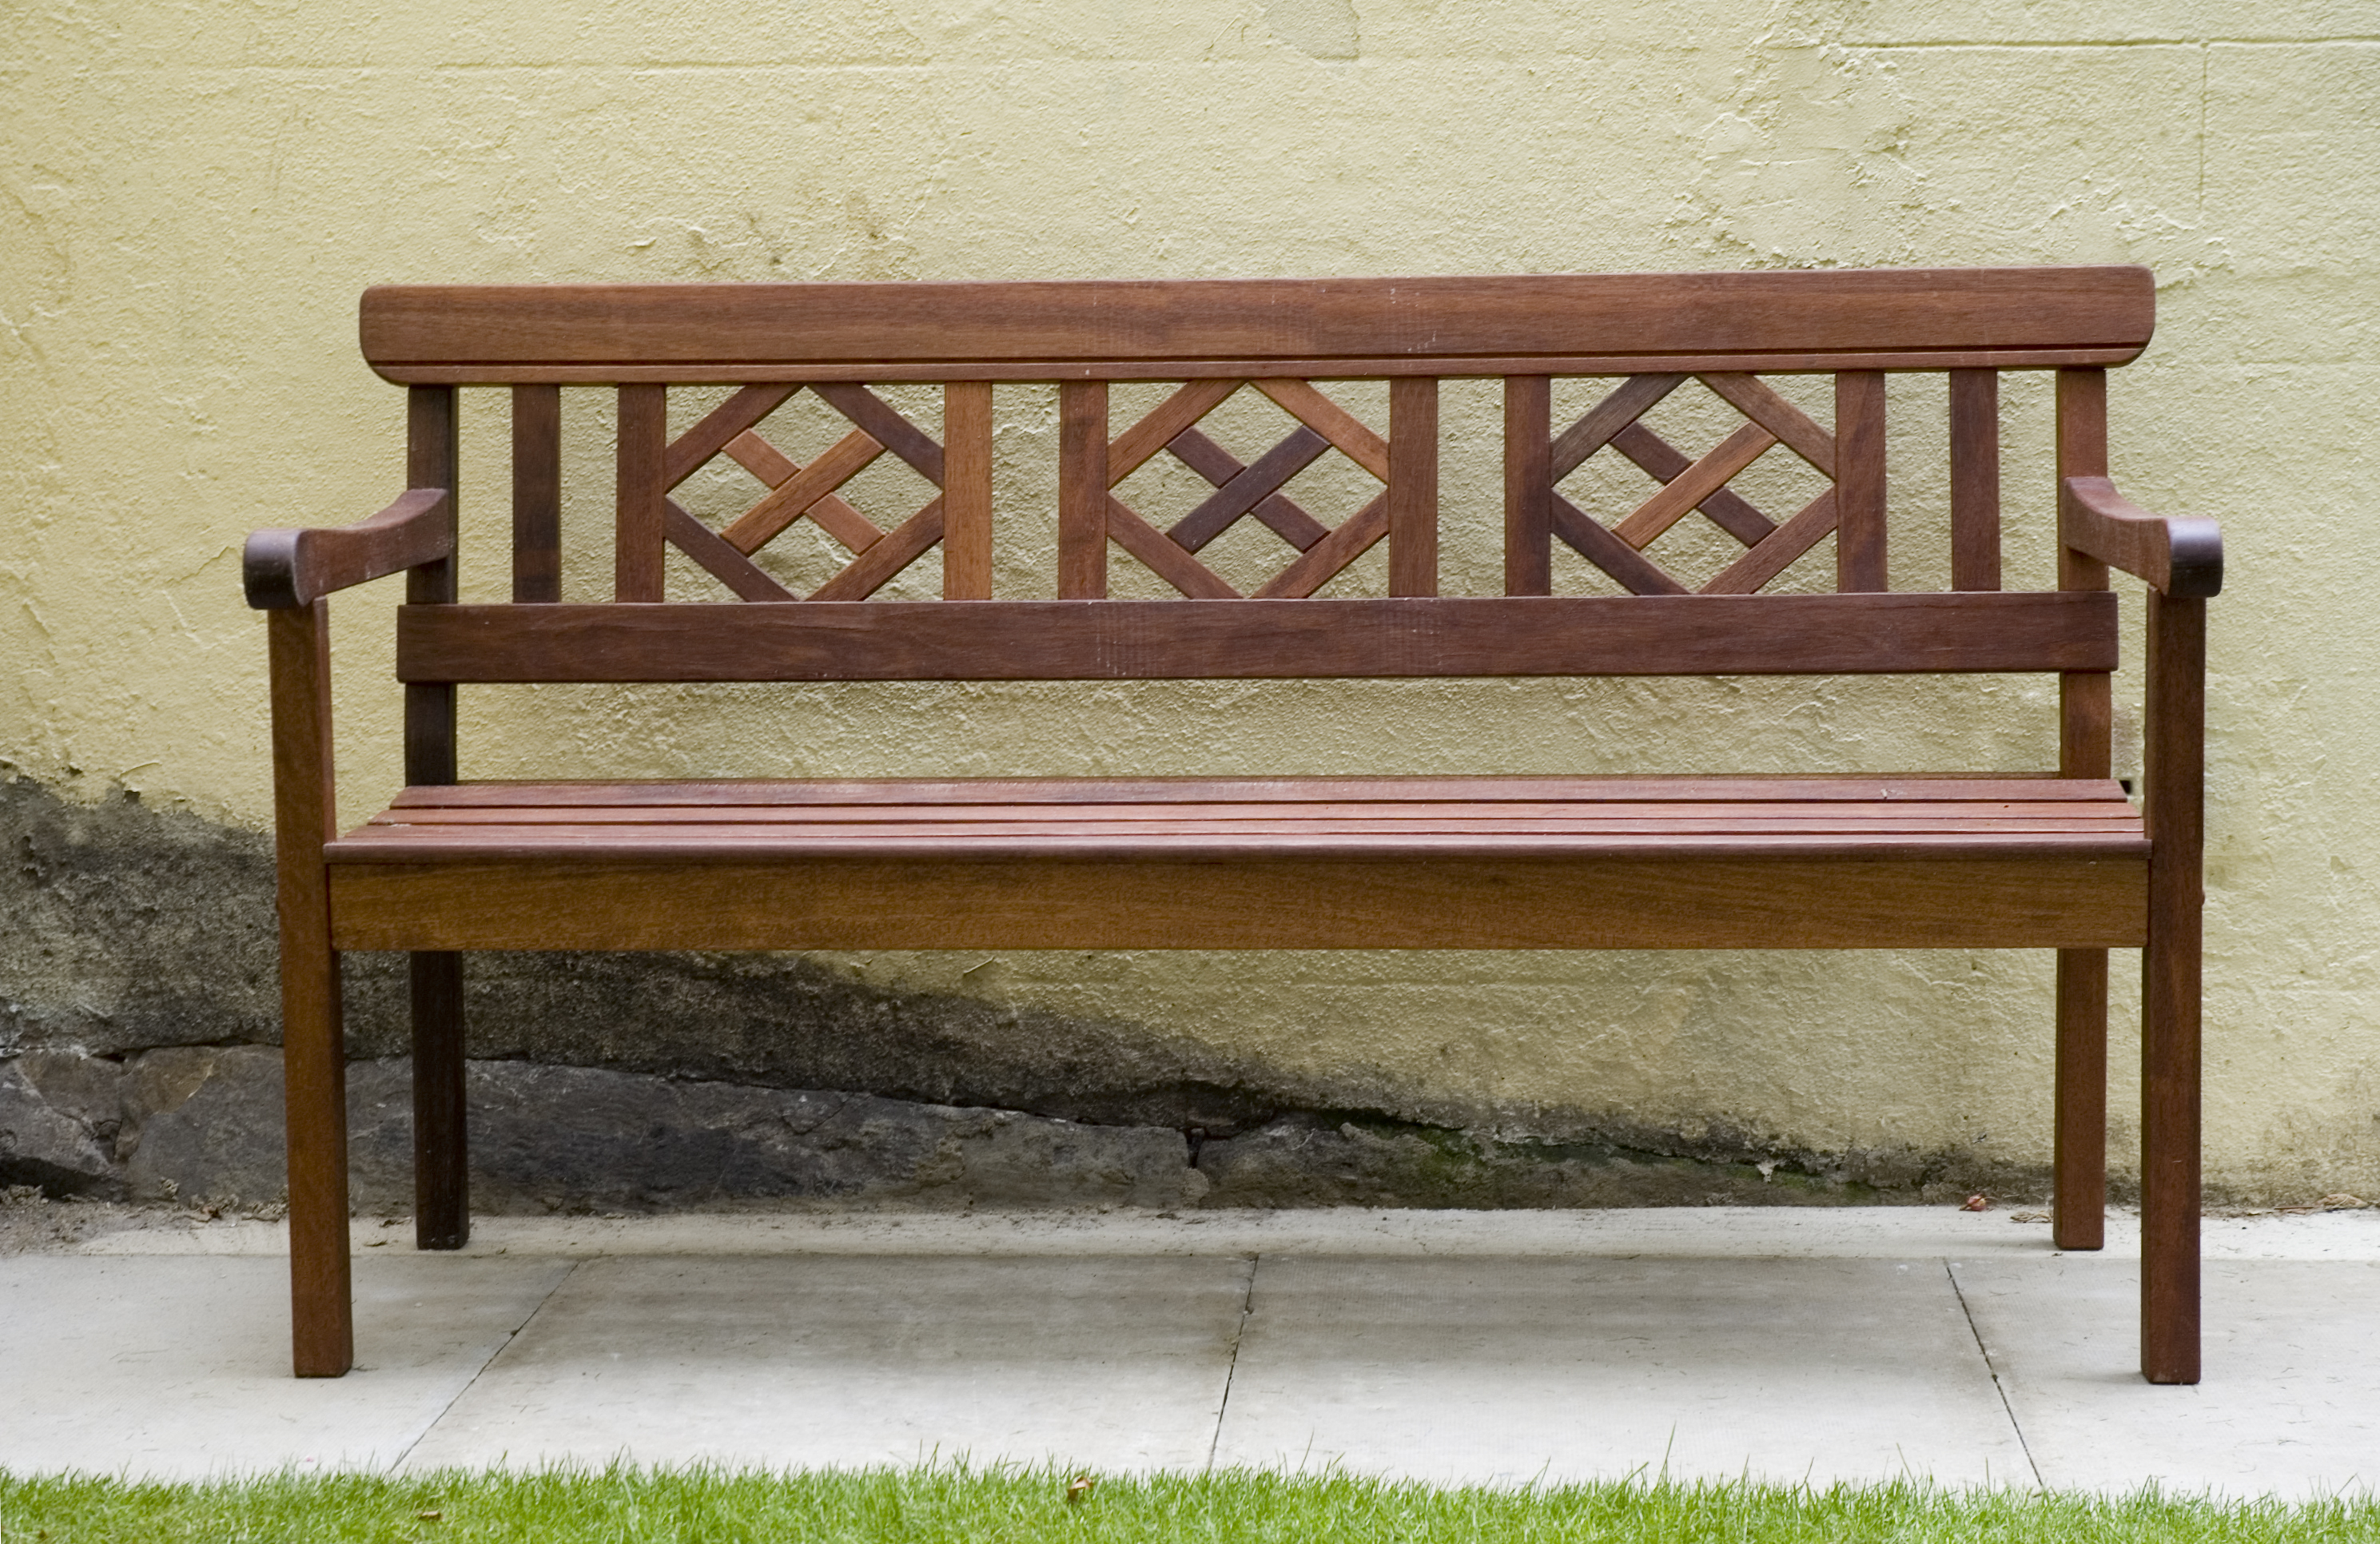 Wooden Park bench against textured yellow wall